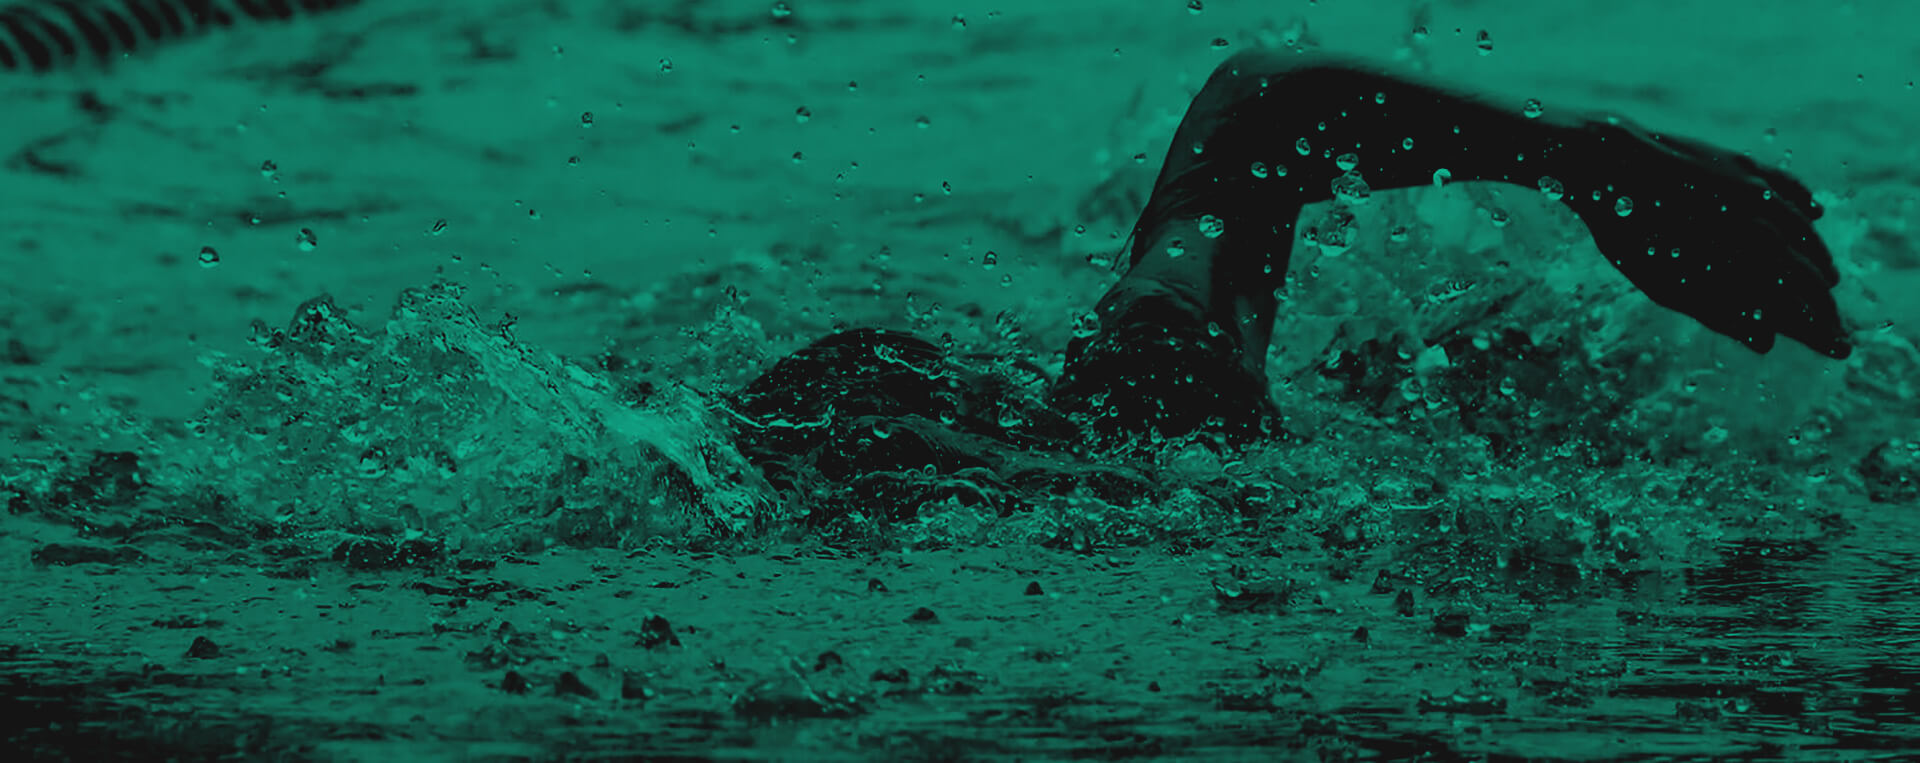 Green and black background image of a man swimming in a pool with his arm raised out of the water